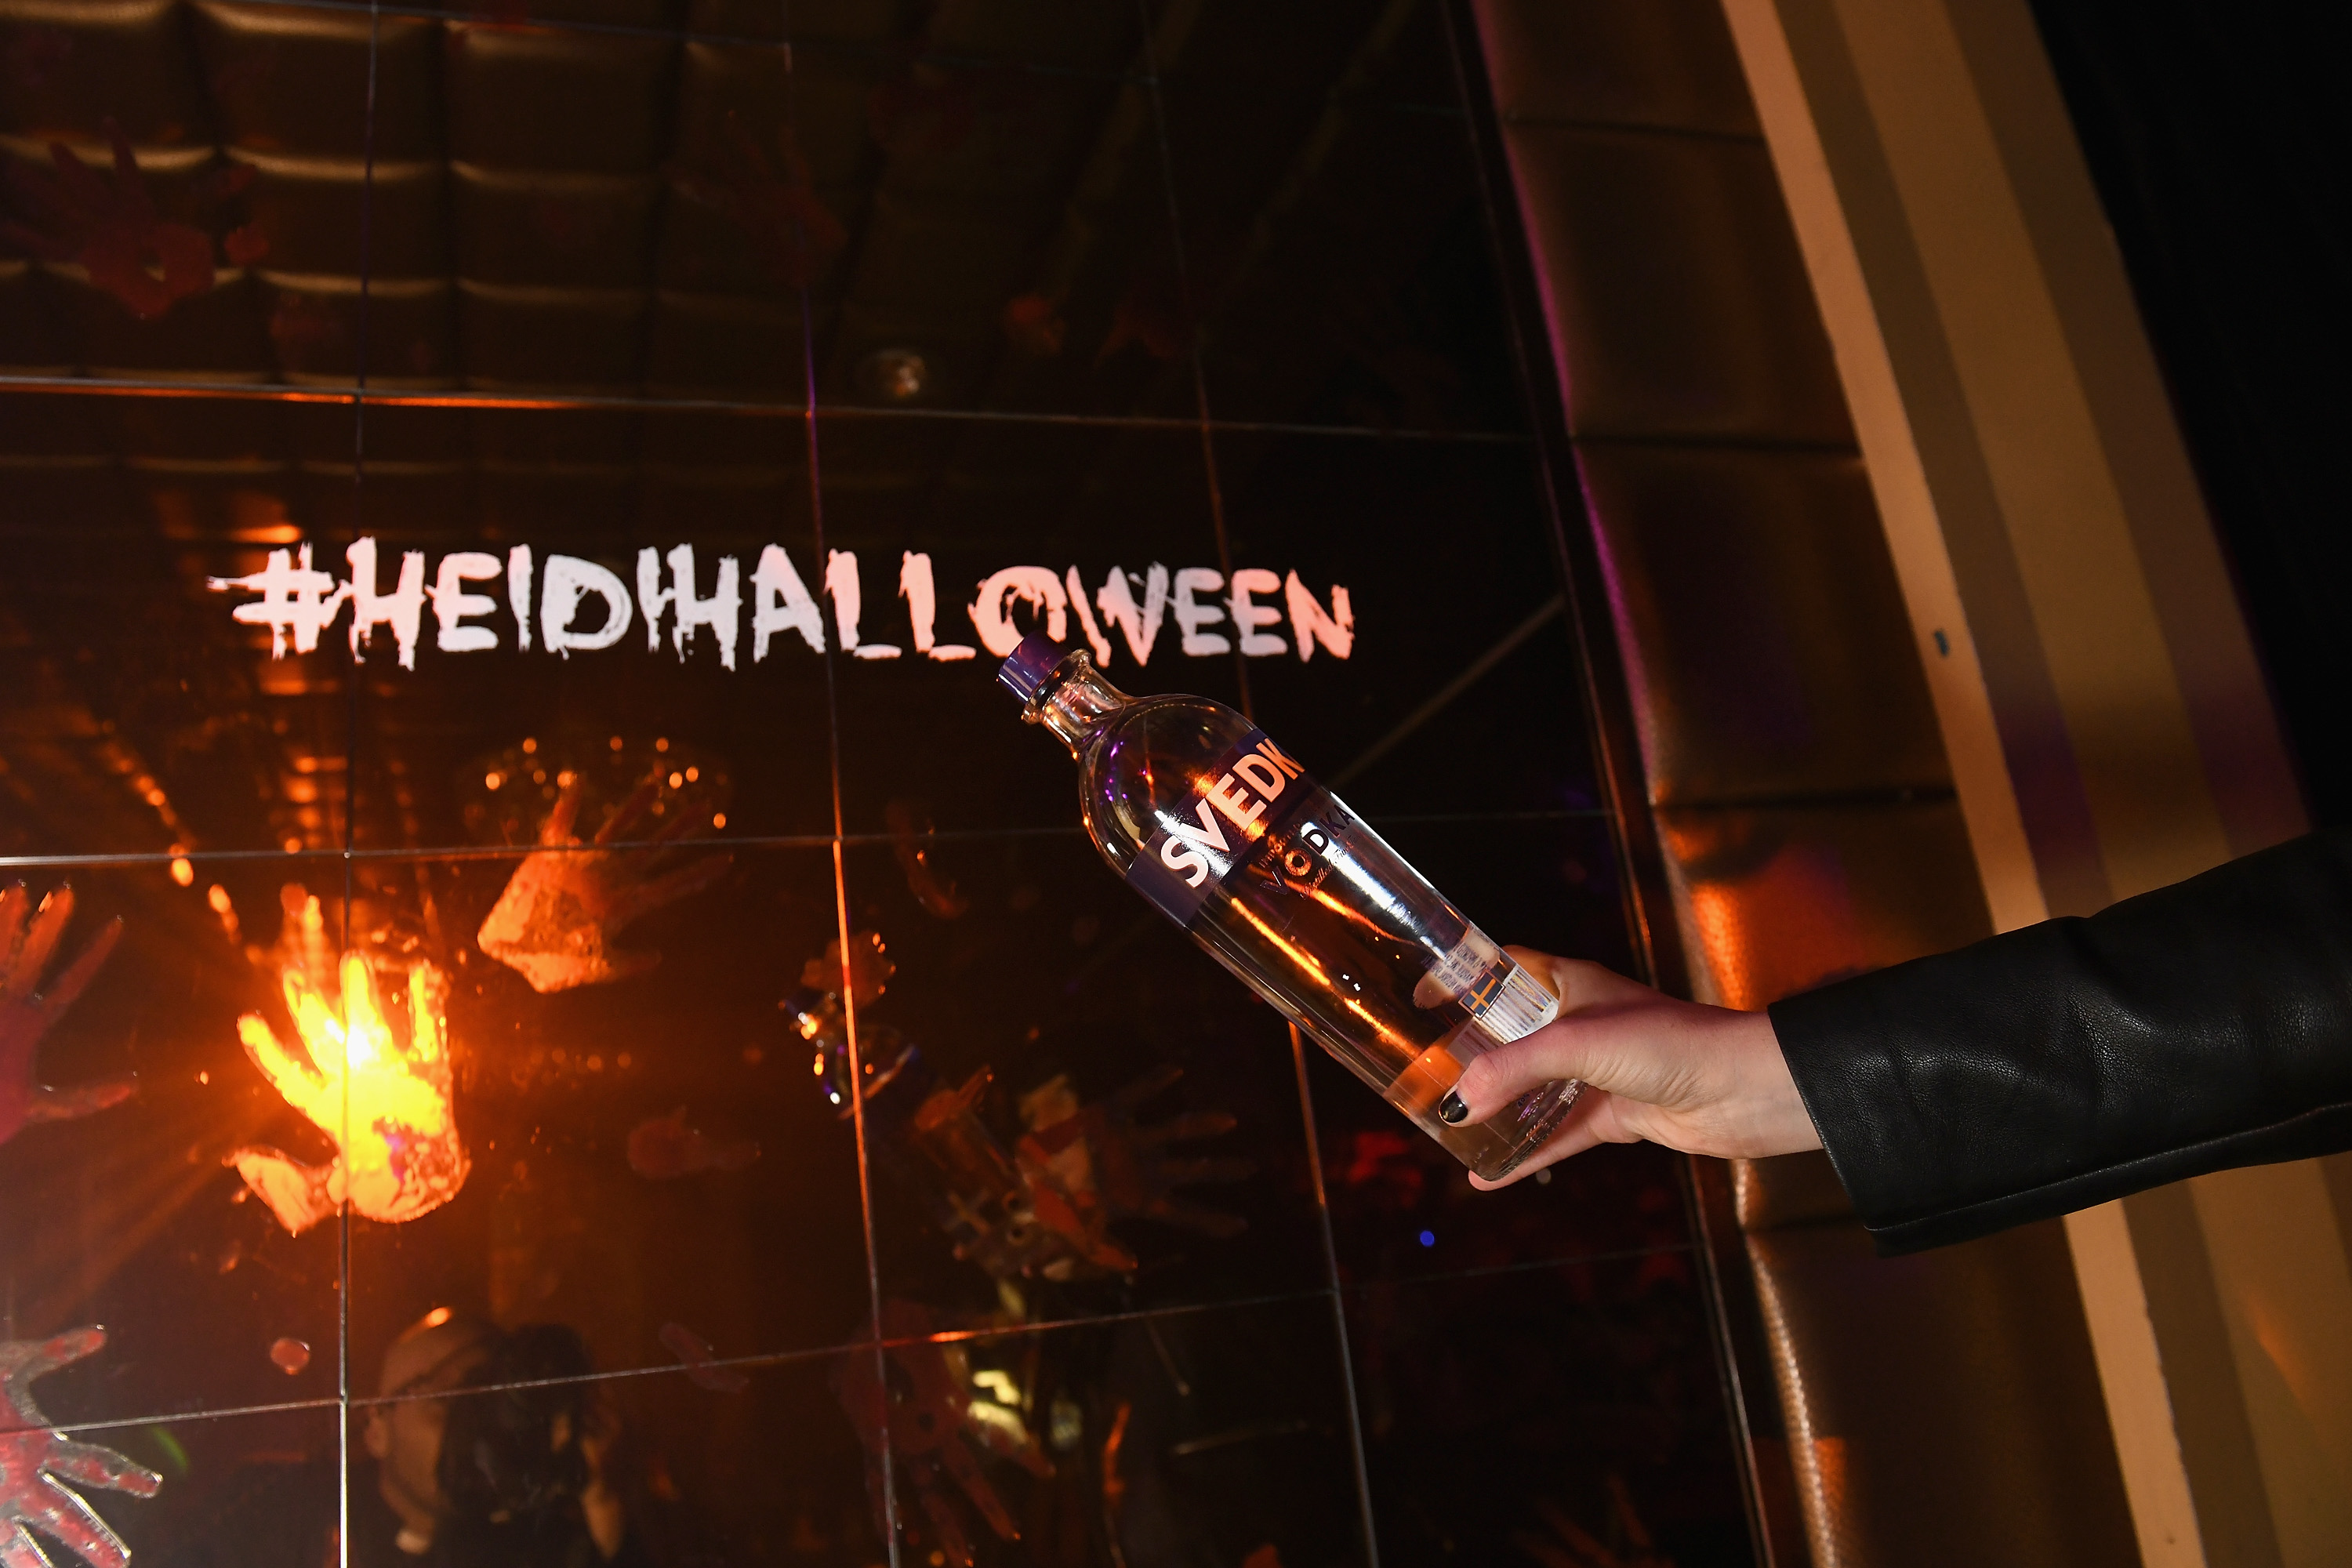 NEW YORK, NY - OCTOBER 31:  A view of SVEDKA Vodka during Heidi Klum's 19th Annual Halloween Party Sponsored by SVEDKA Vodka and Party City at Lavo NYC on October 31, 2018 in New York City.  (Photo by Craig Barritt/Getty Images for SVEDKA Vodka)